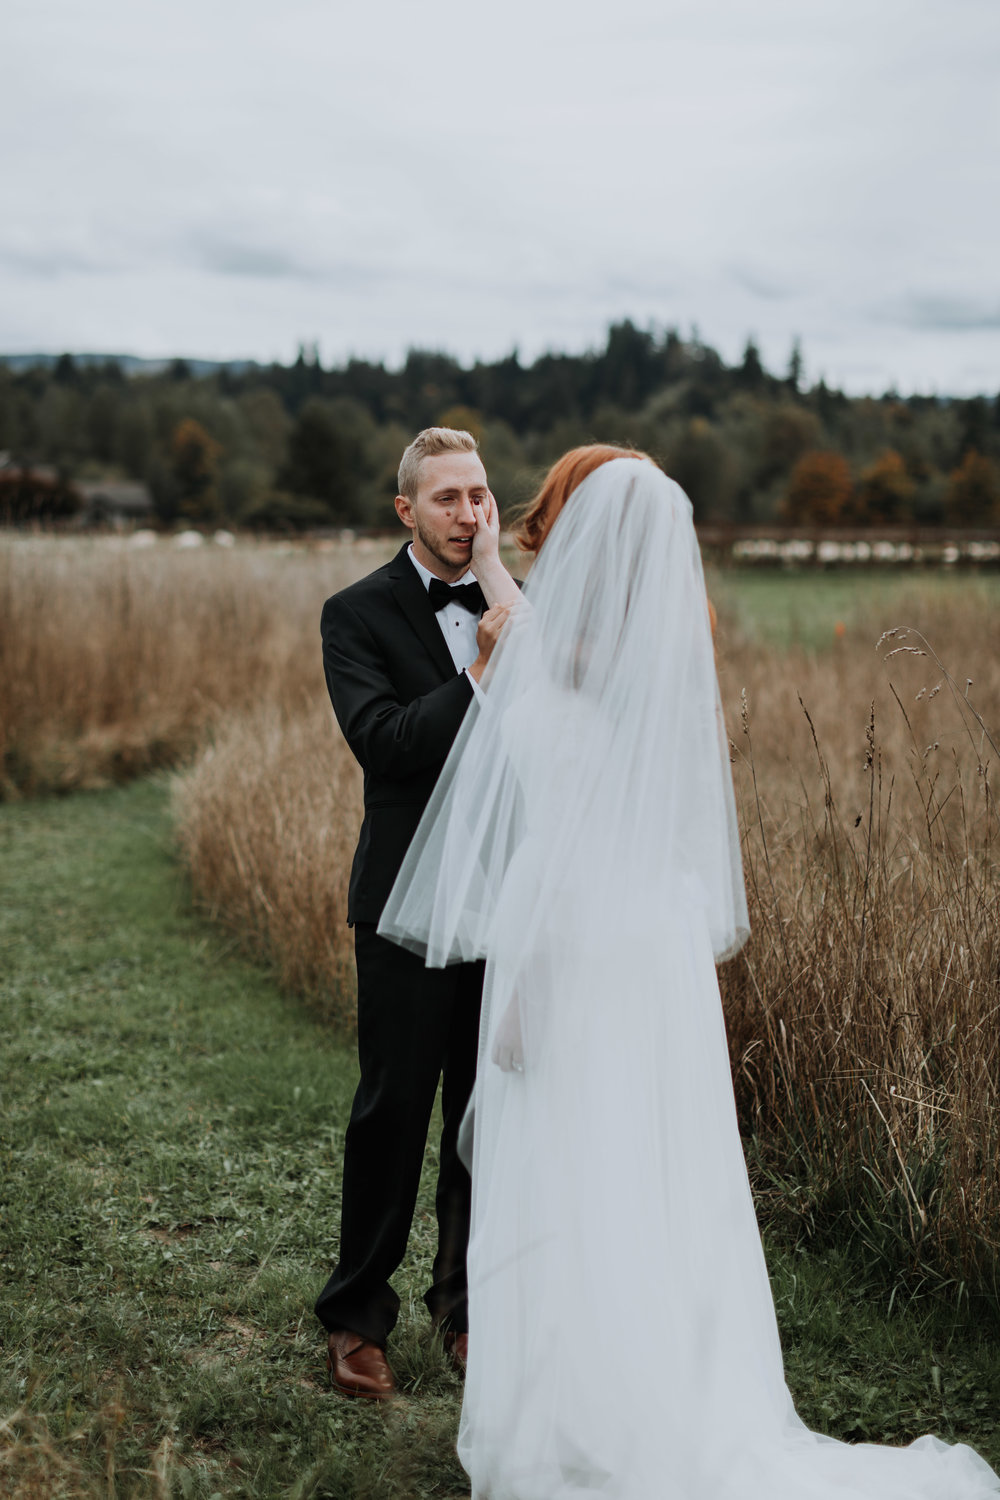 adam sophie red barn wedding arlington washington foggy day pnw first look